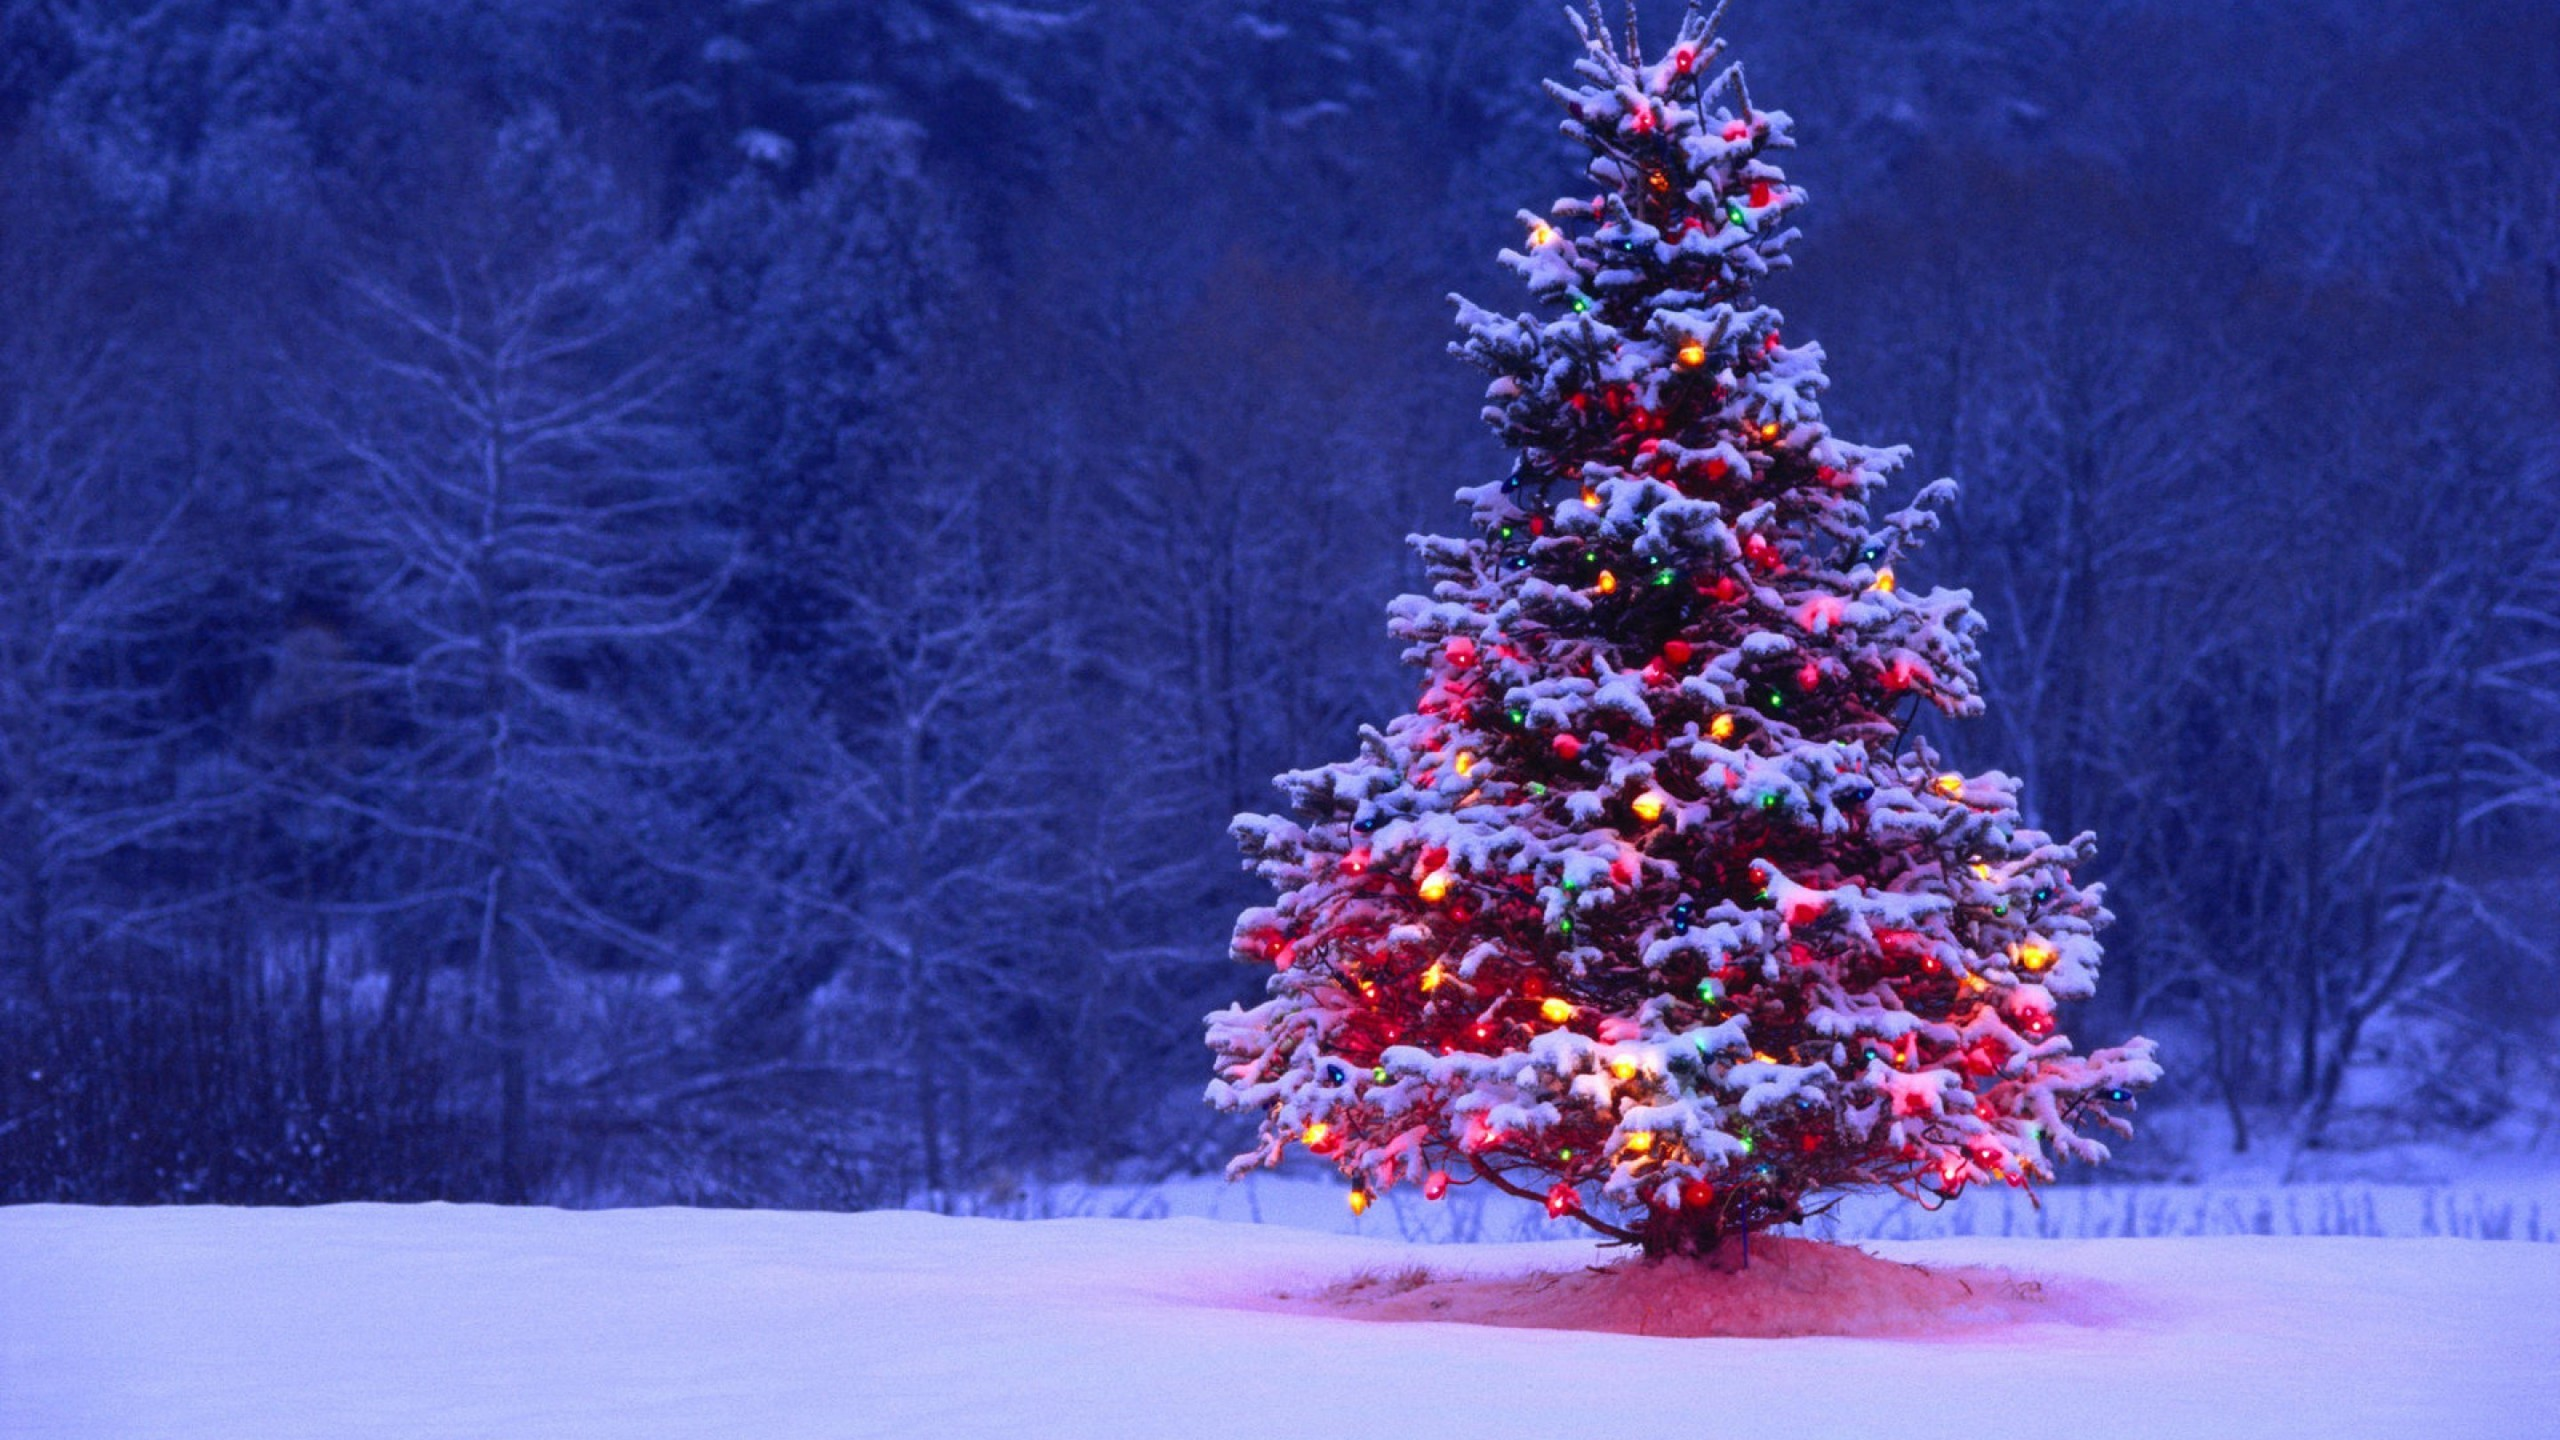 Res: 2560x1440, Christmas Tree Lights Snow Forest Holiday Desktop Wallpaper Uploaded by  DesktopWalls